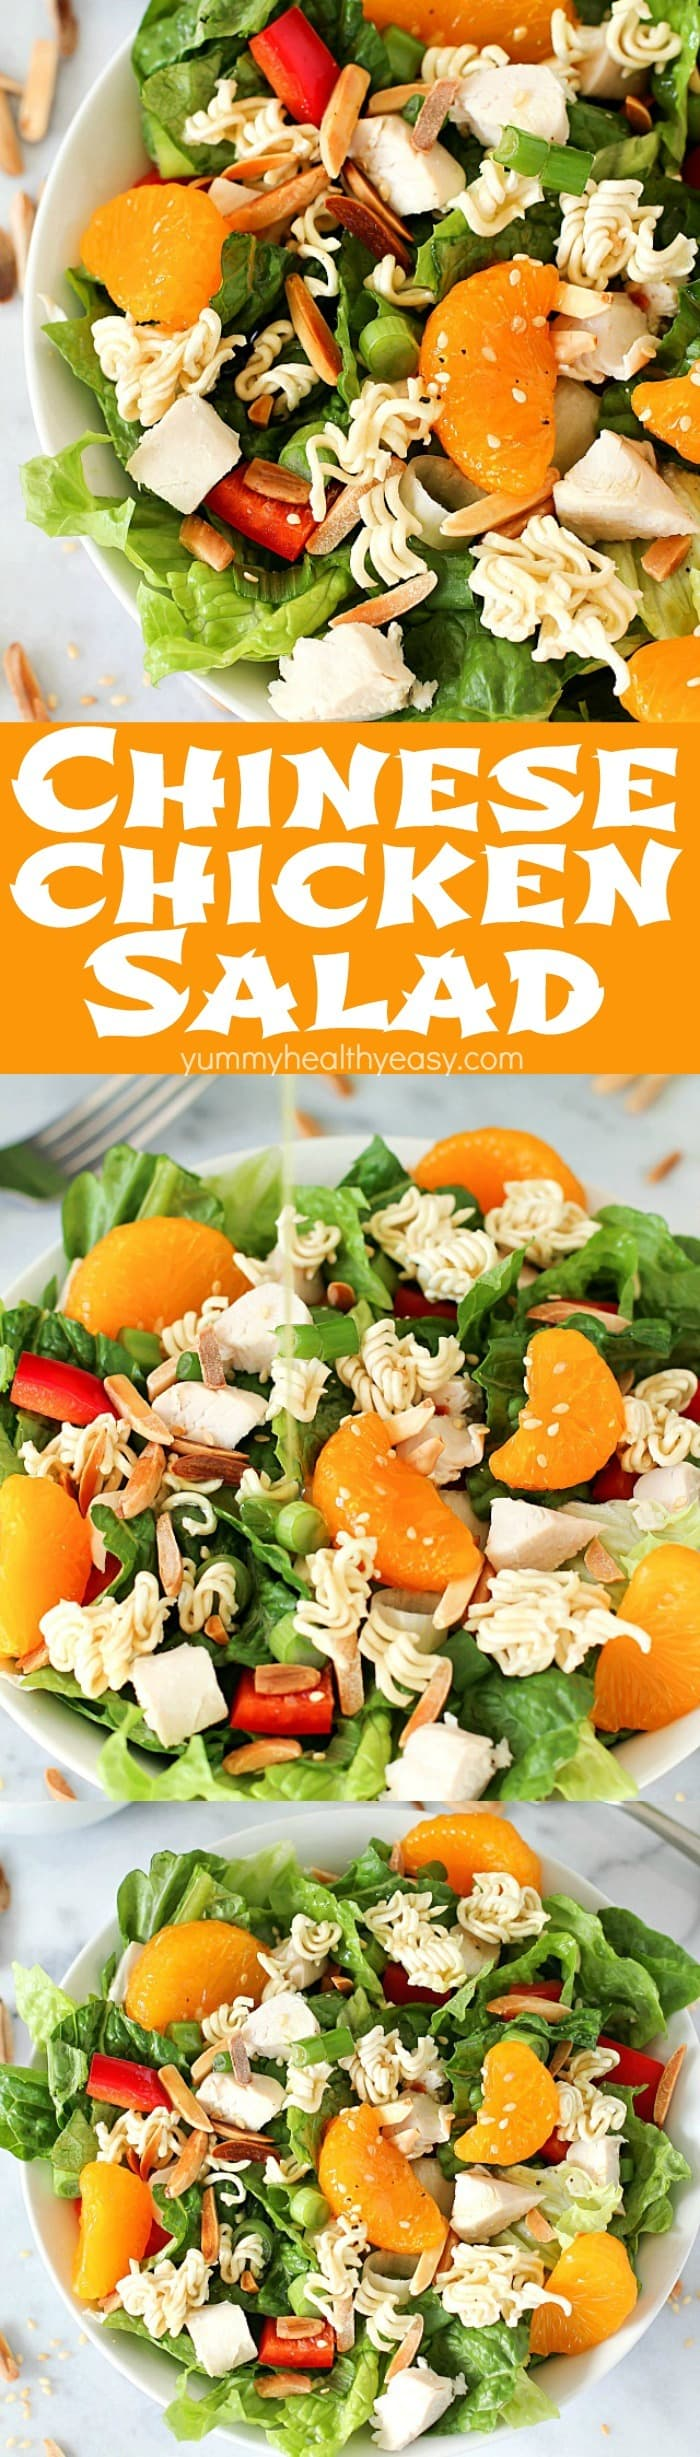 This Best EVER Chinese Chicken Salad is a healthy, flavorful, easy lunch or dinner salad recipe. It's easy to make but tastes like it's straight from a restaurant - this will become a favorite salad recipe at your house!